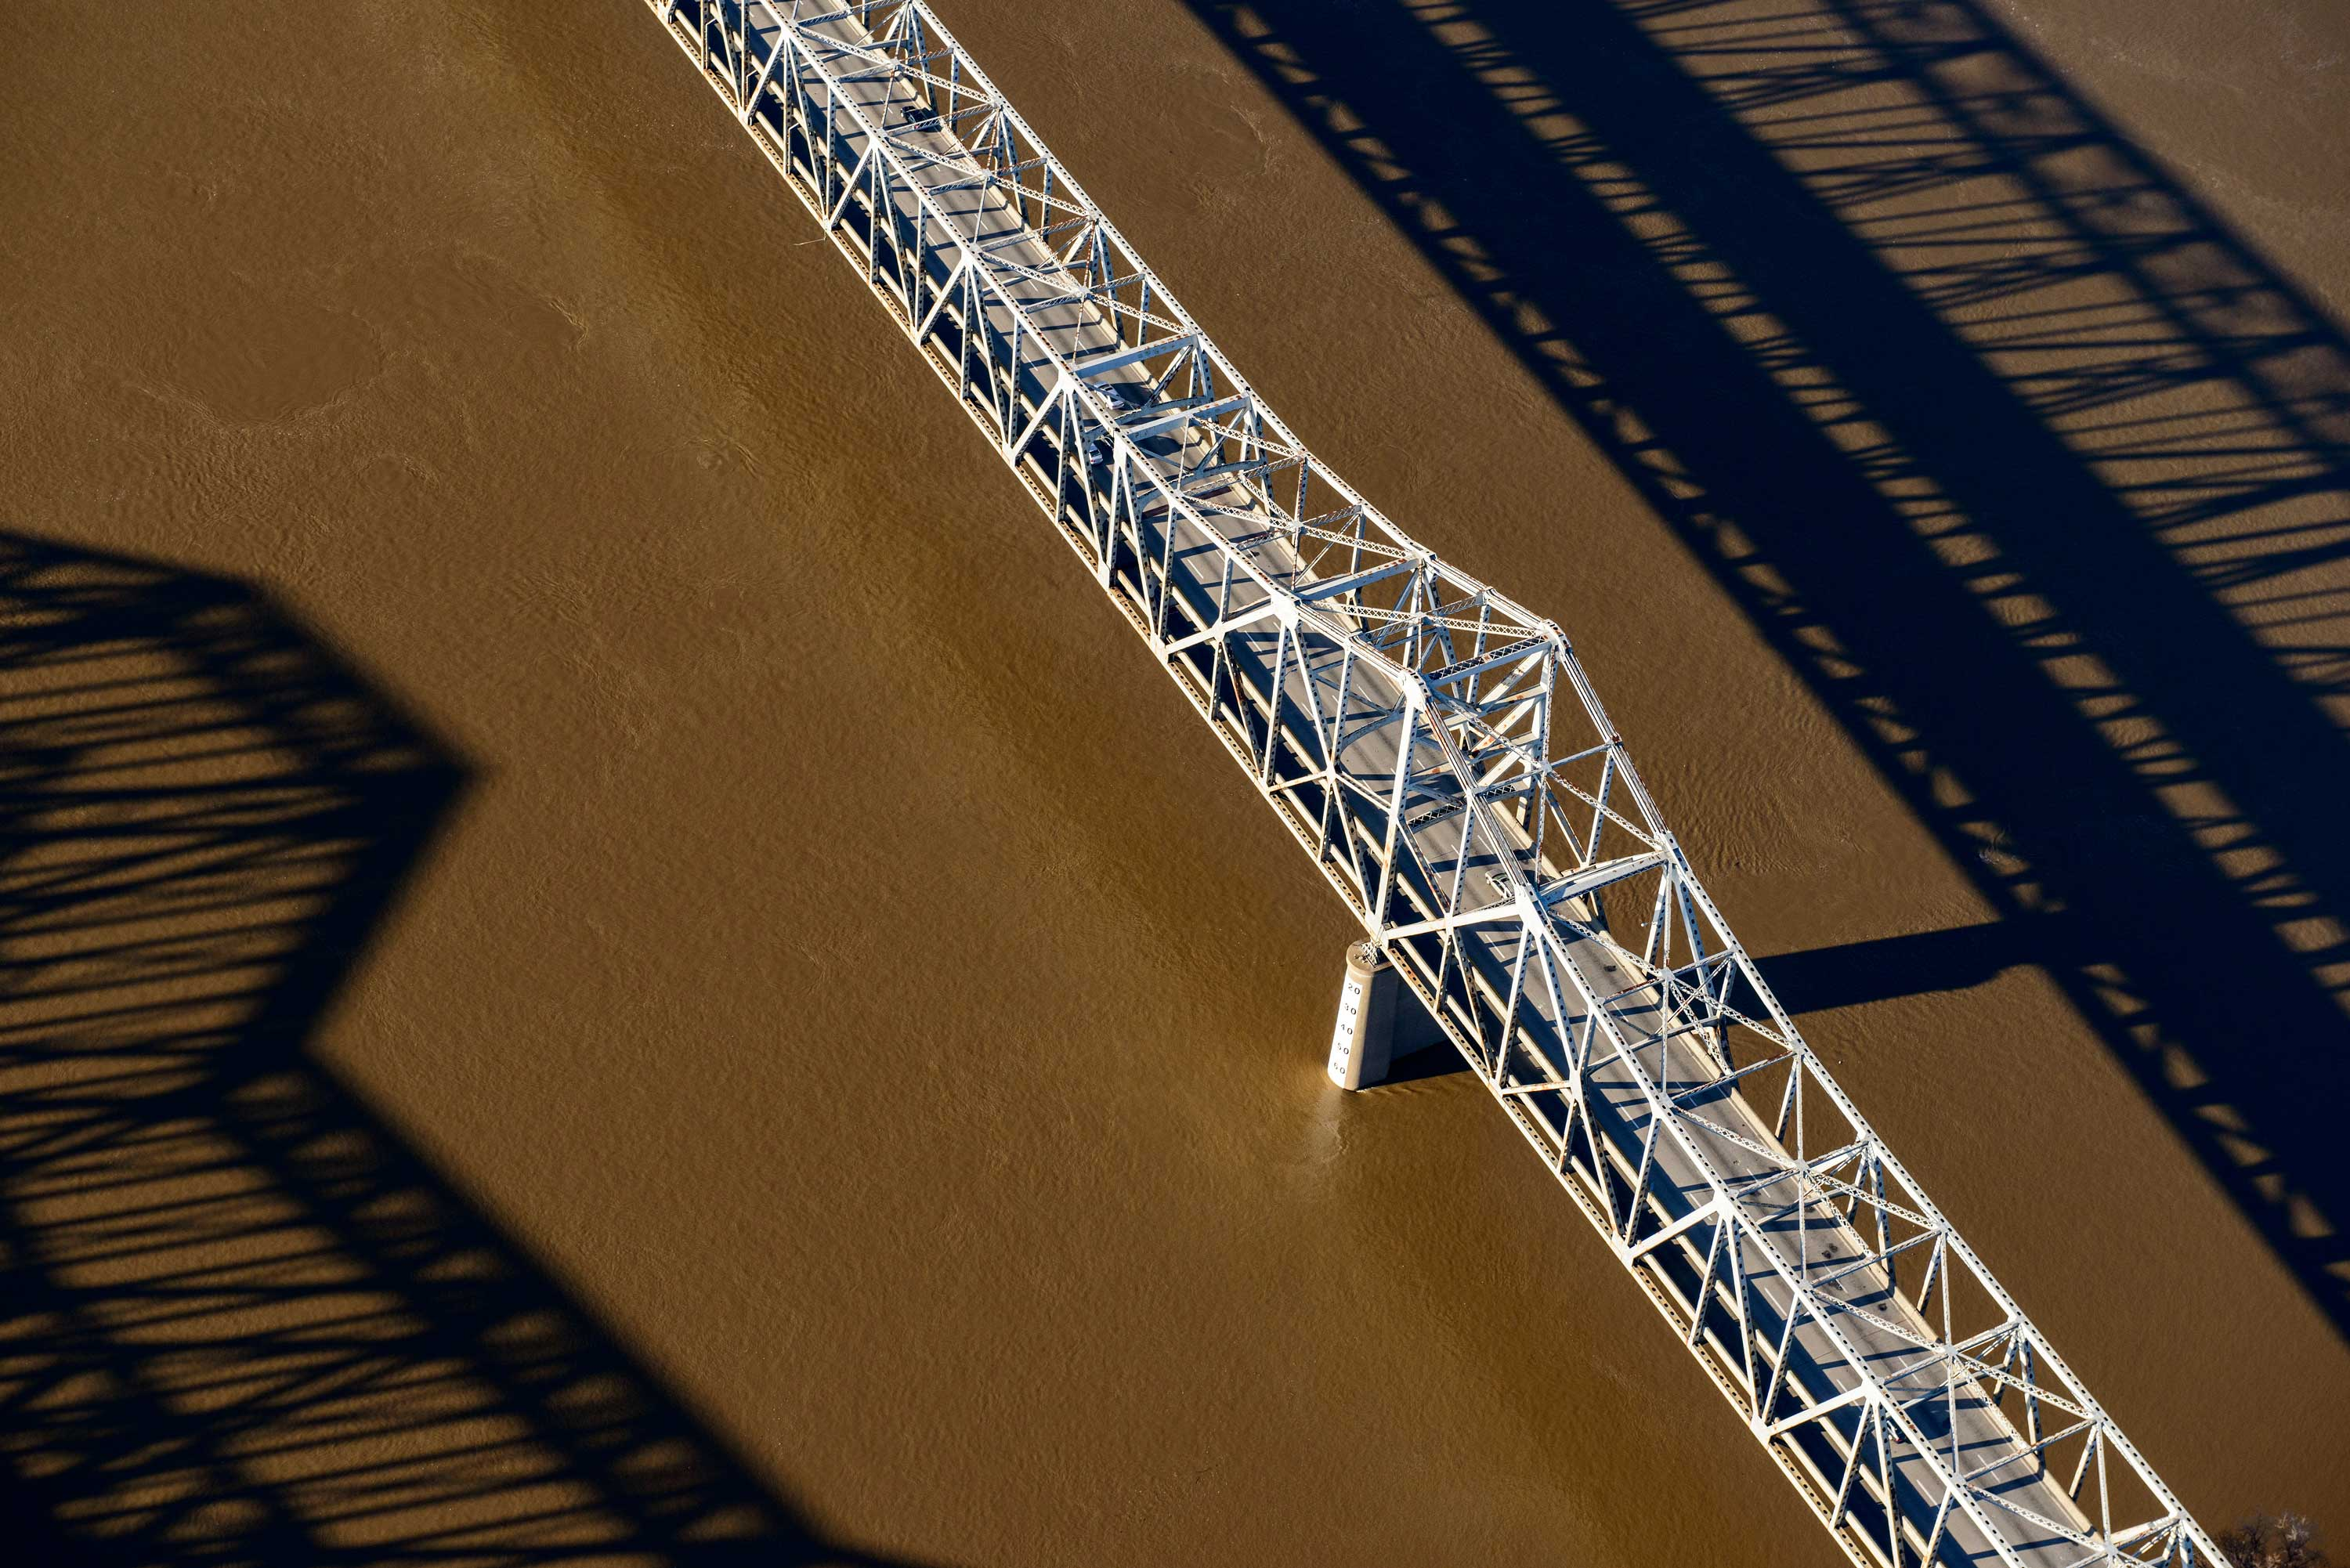 Most bridges built midcentury have a 50-year design life; the Brent Spence Bridge over the Ohio River will turn 54 this year.